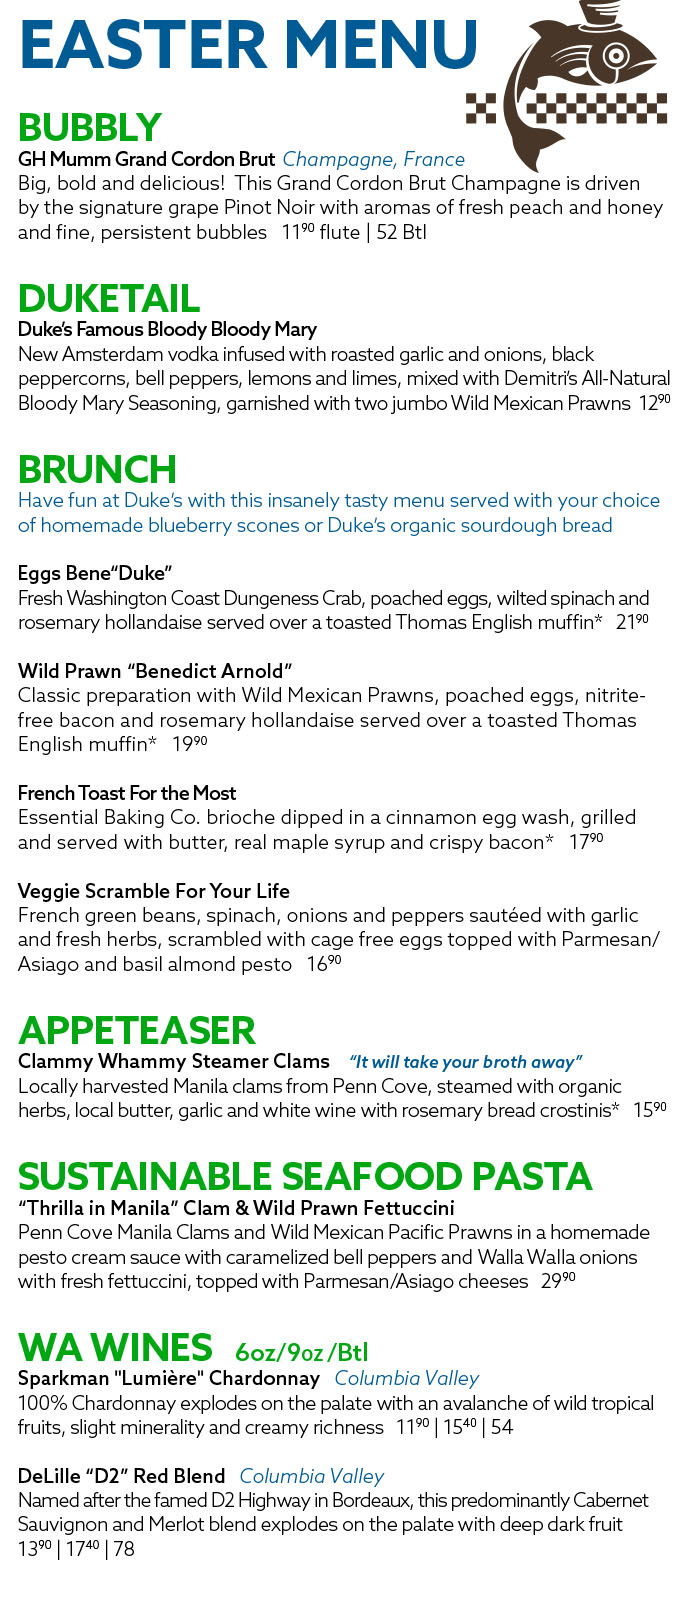 Easter Brunch Menu 2021